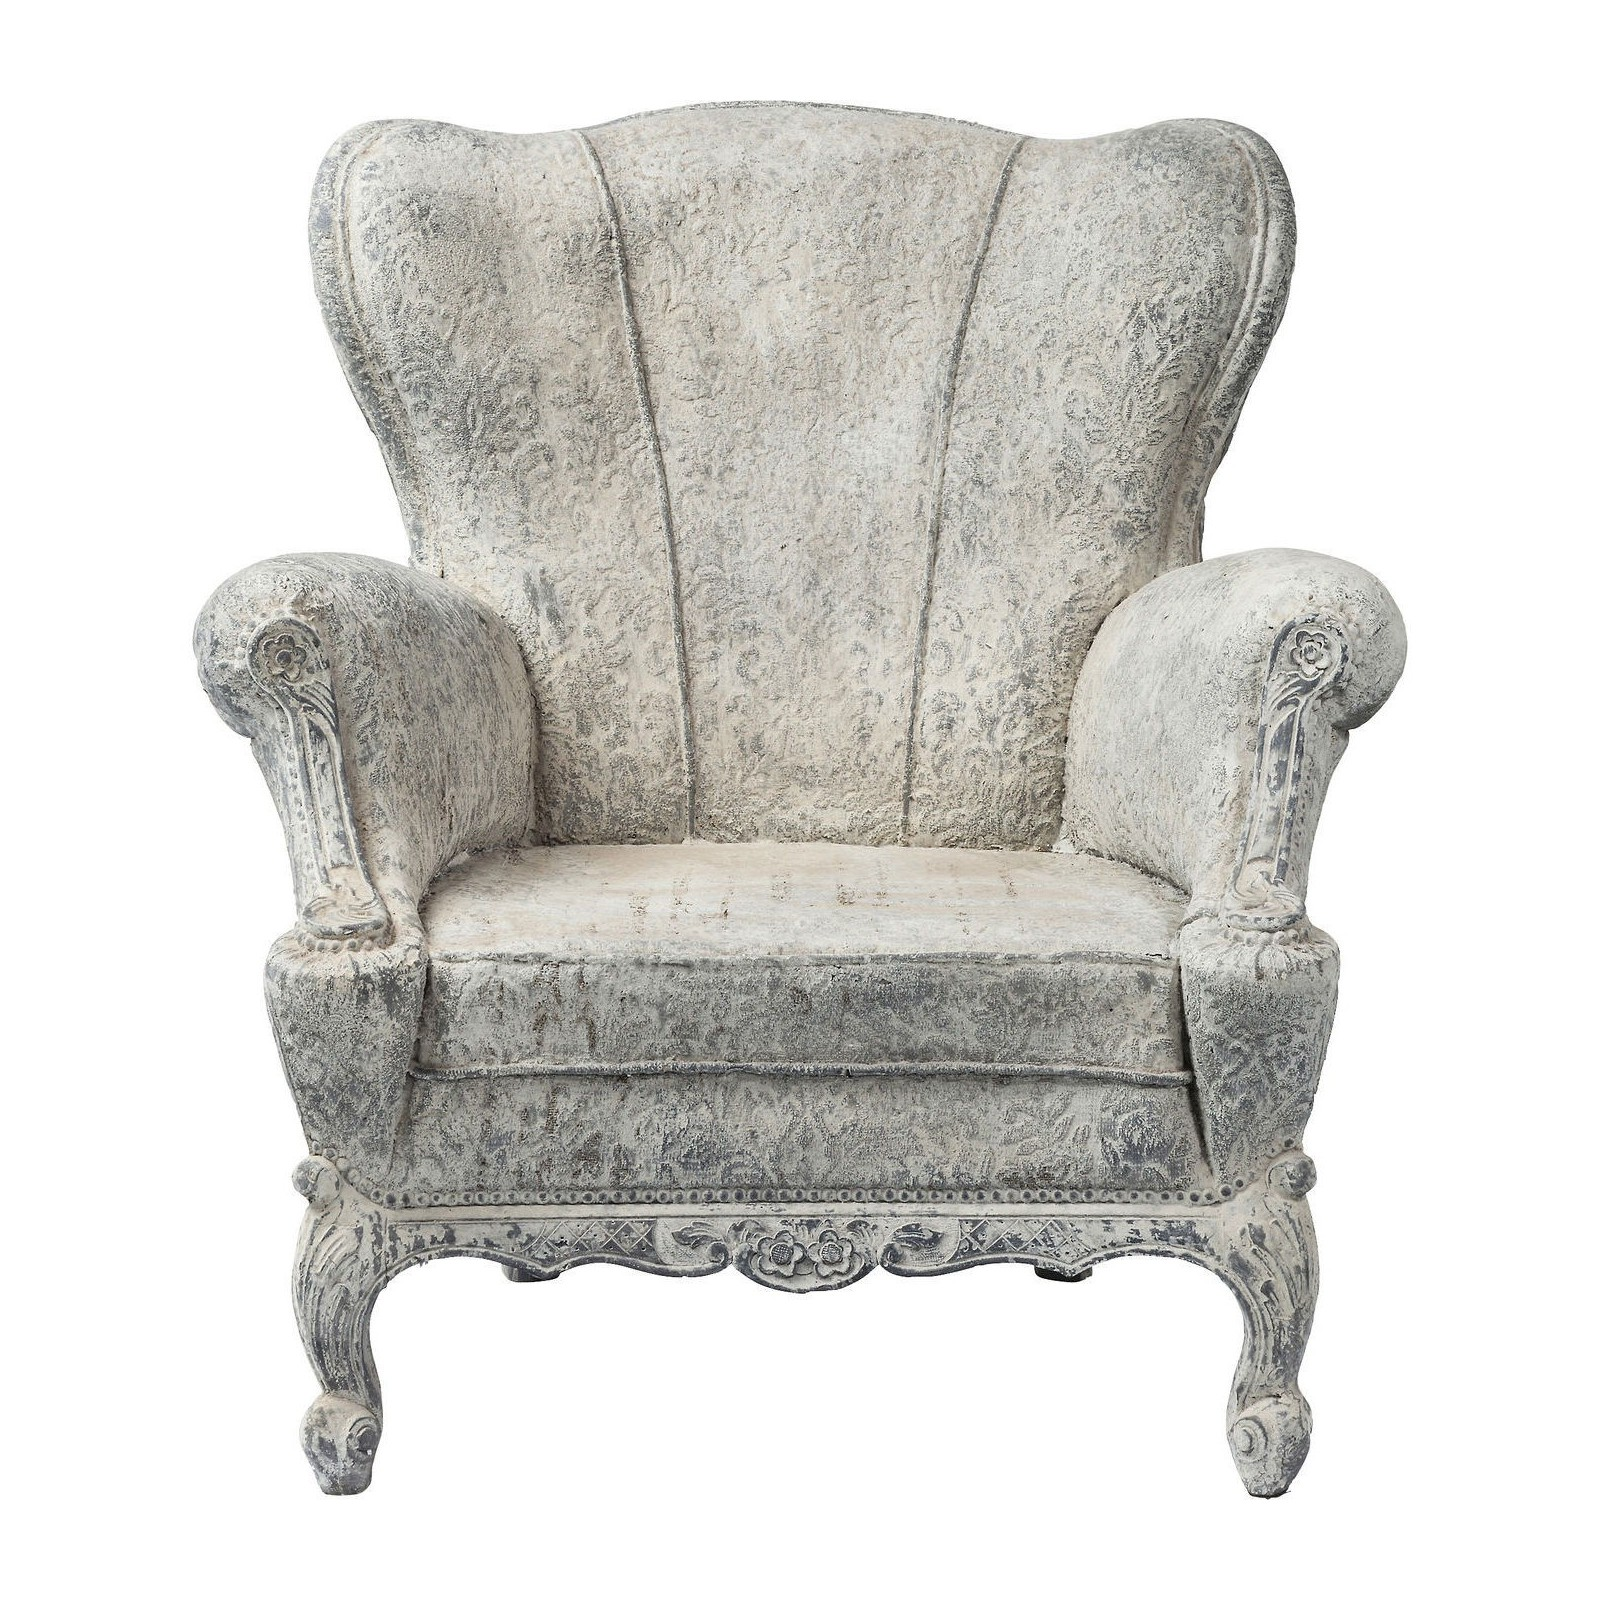 fauteuil de jardin gris versailles kare design. Black Bedroom Furniture Sets. Home Design Ideas